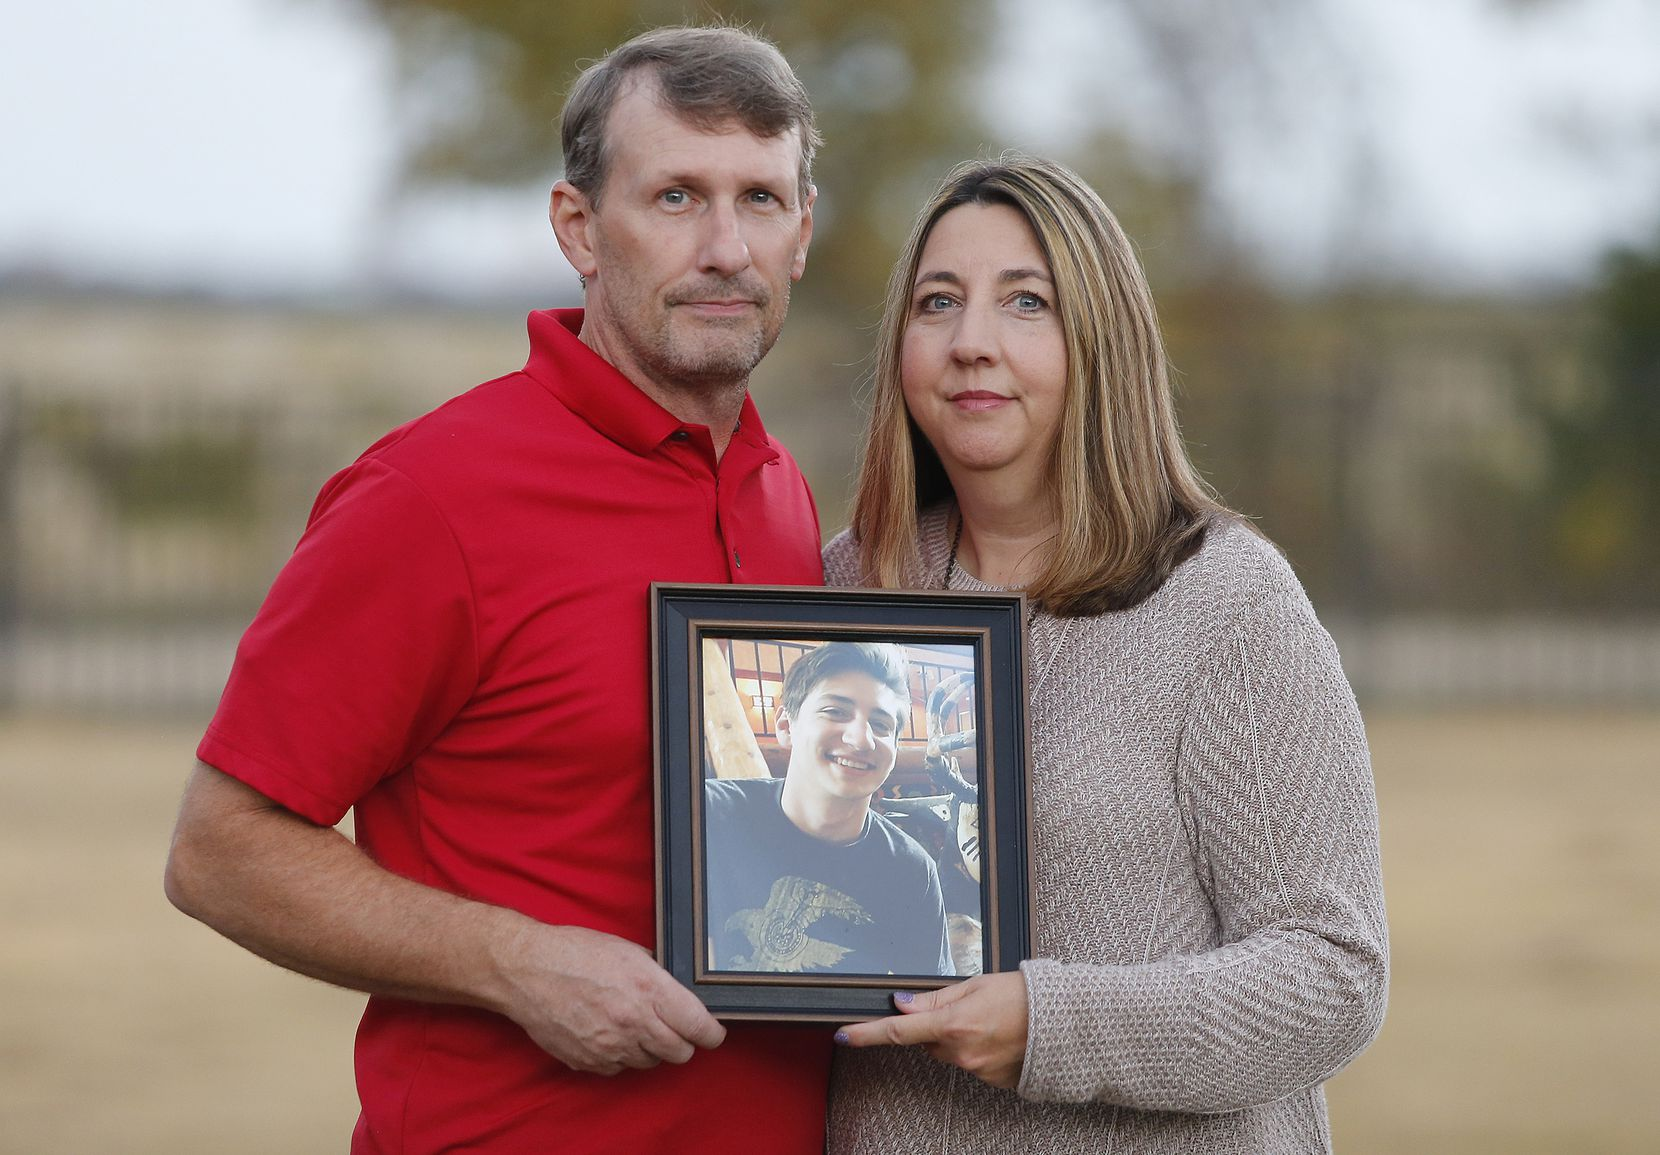 Bruce and Wendy Tyler with a photo of their son, Christian, who struggled with depression and died by suicide in August 2016. It was Wendy Tyler who alerted the district to the Hope Squad initiative as a possible way to help other students.